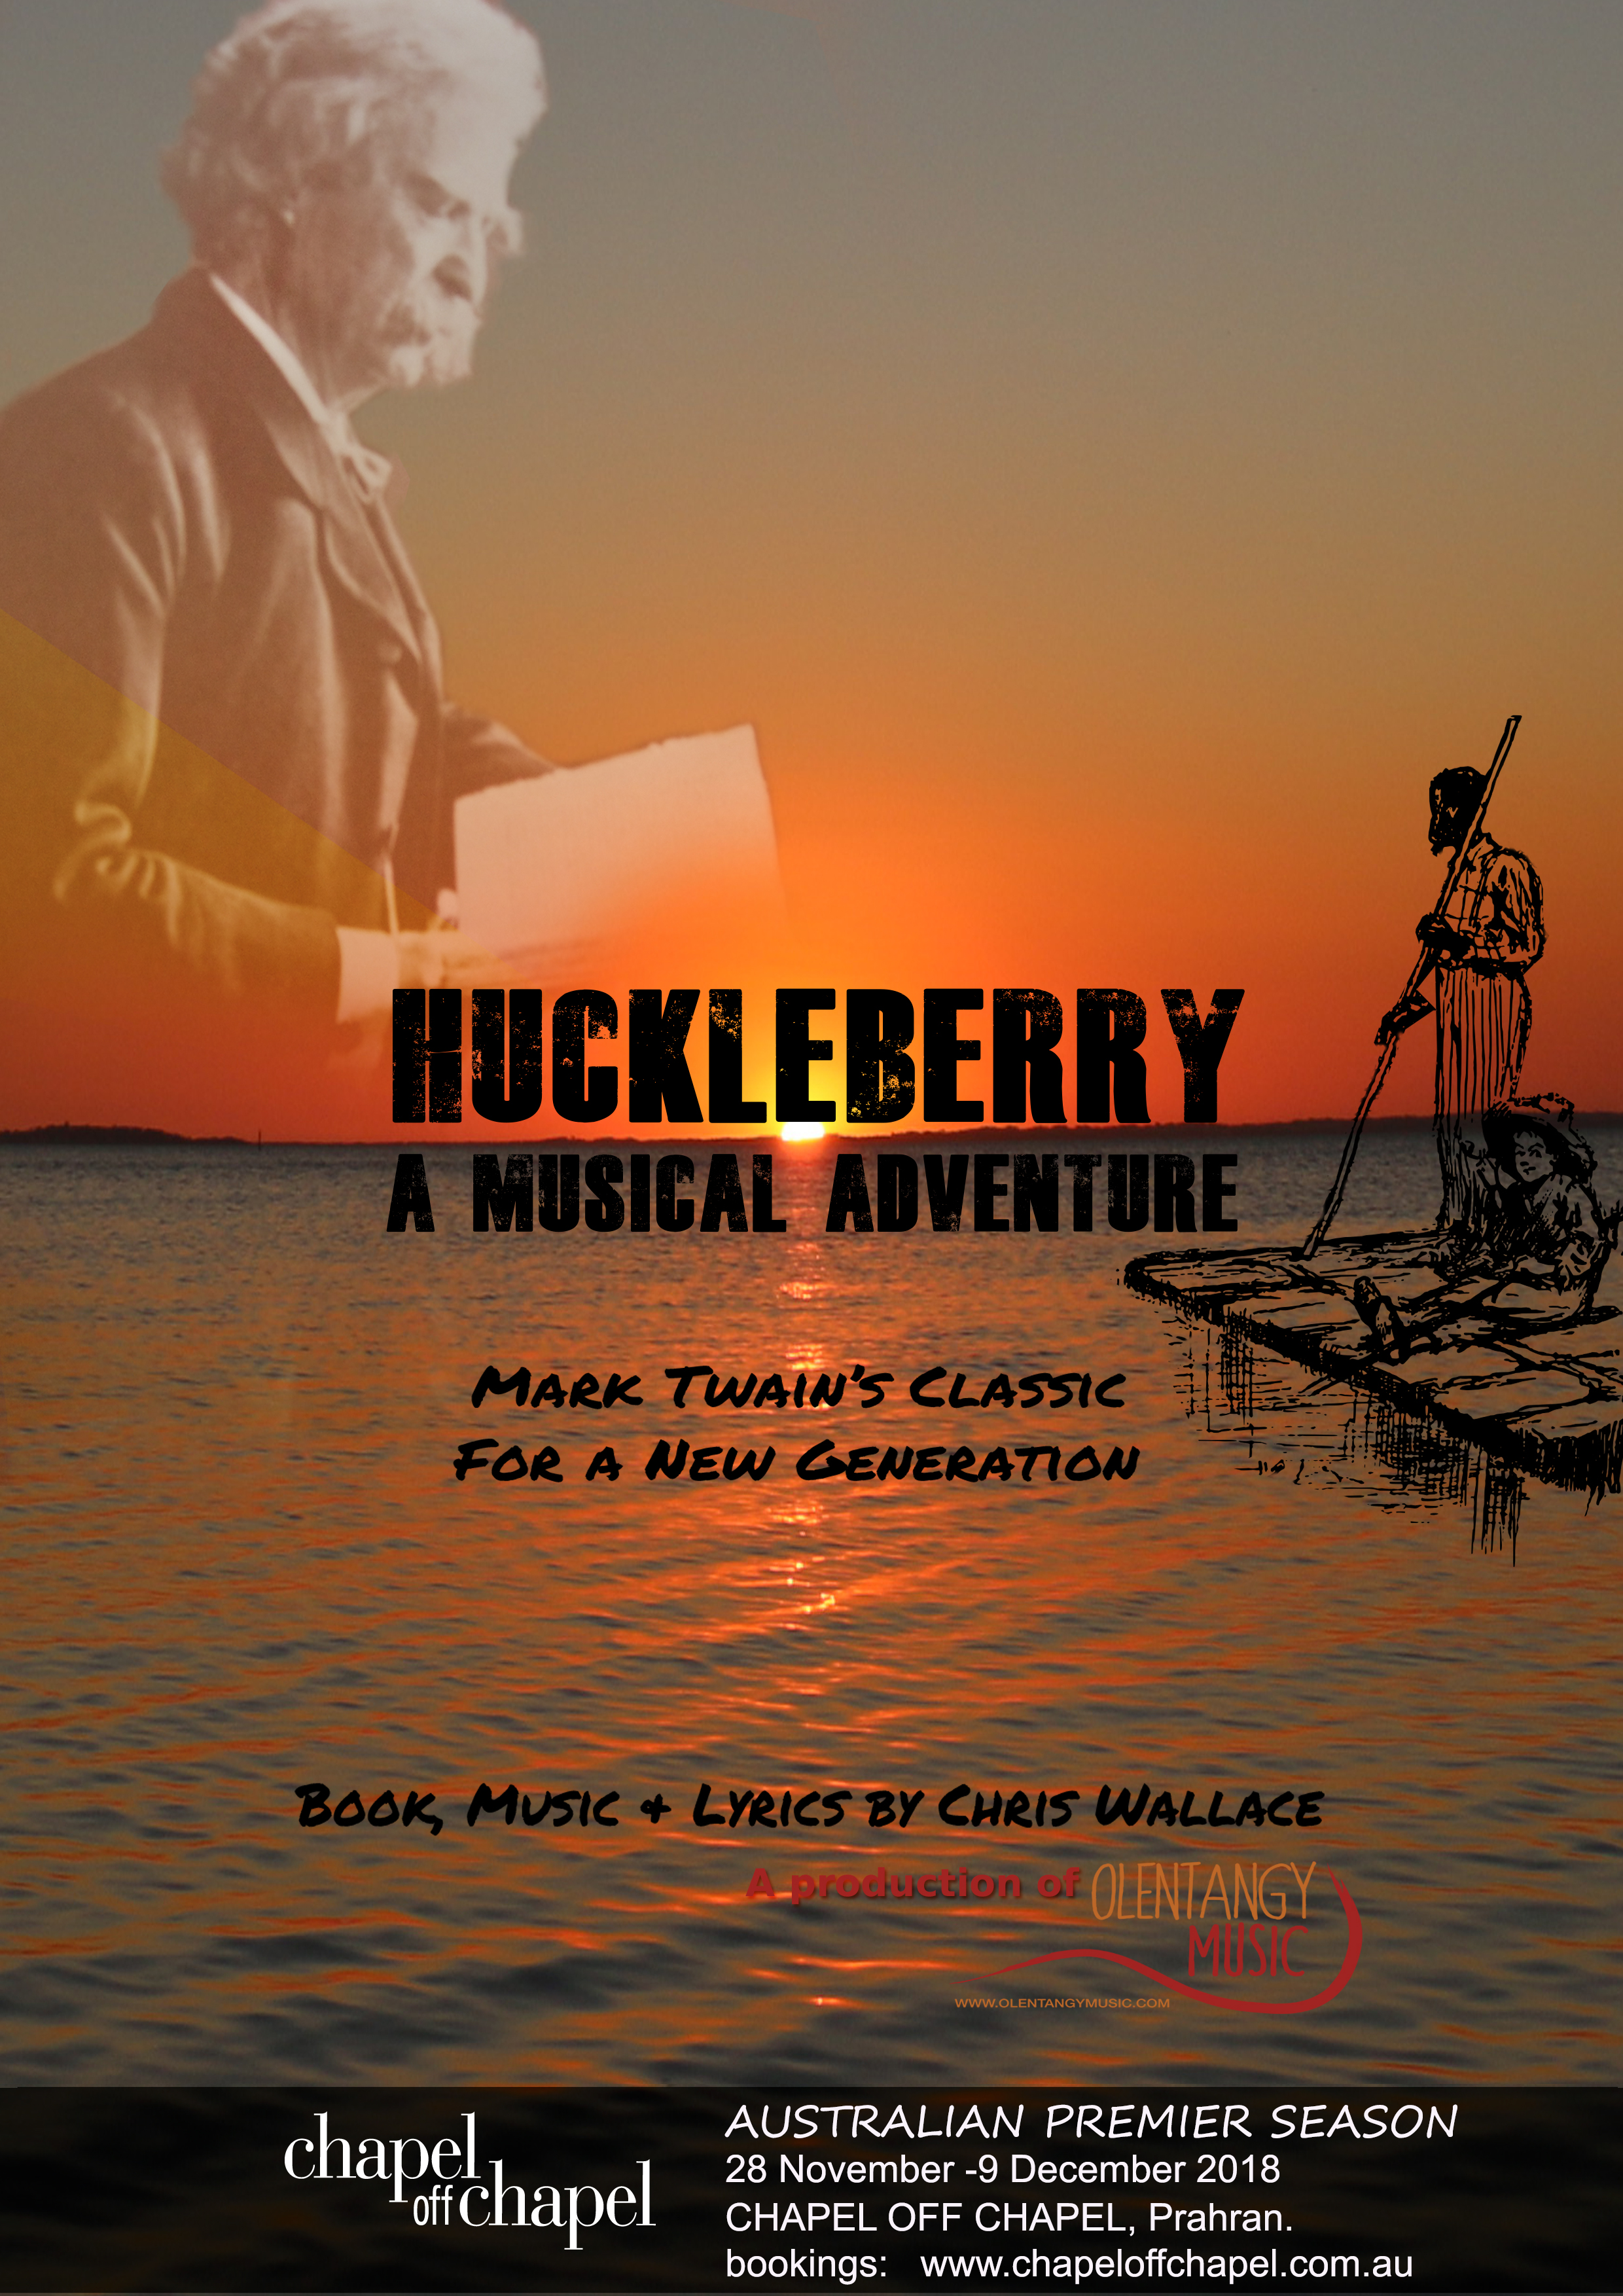 Huckleberry: A Musical Adventure